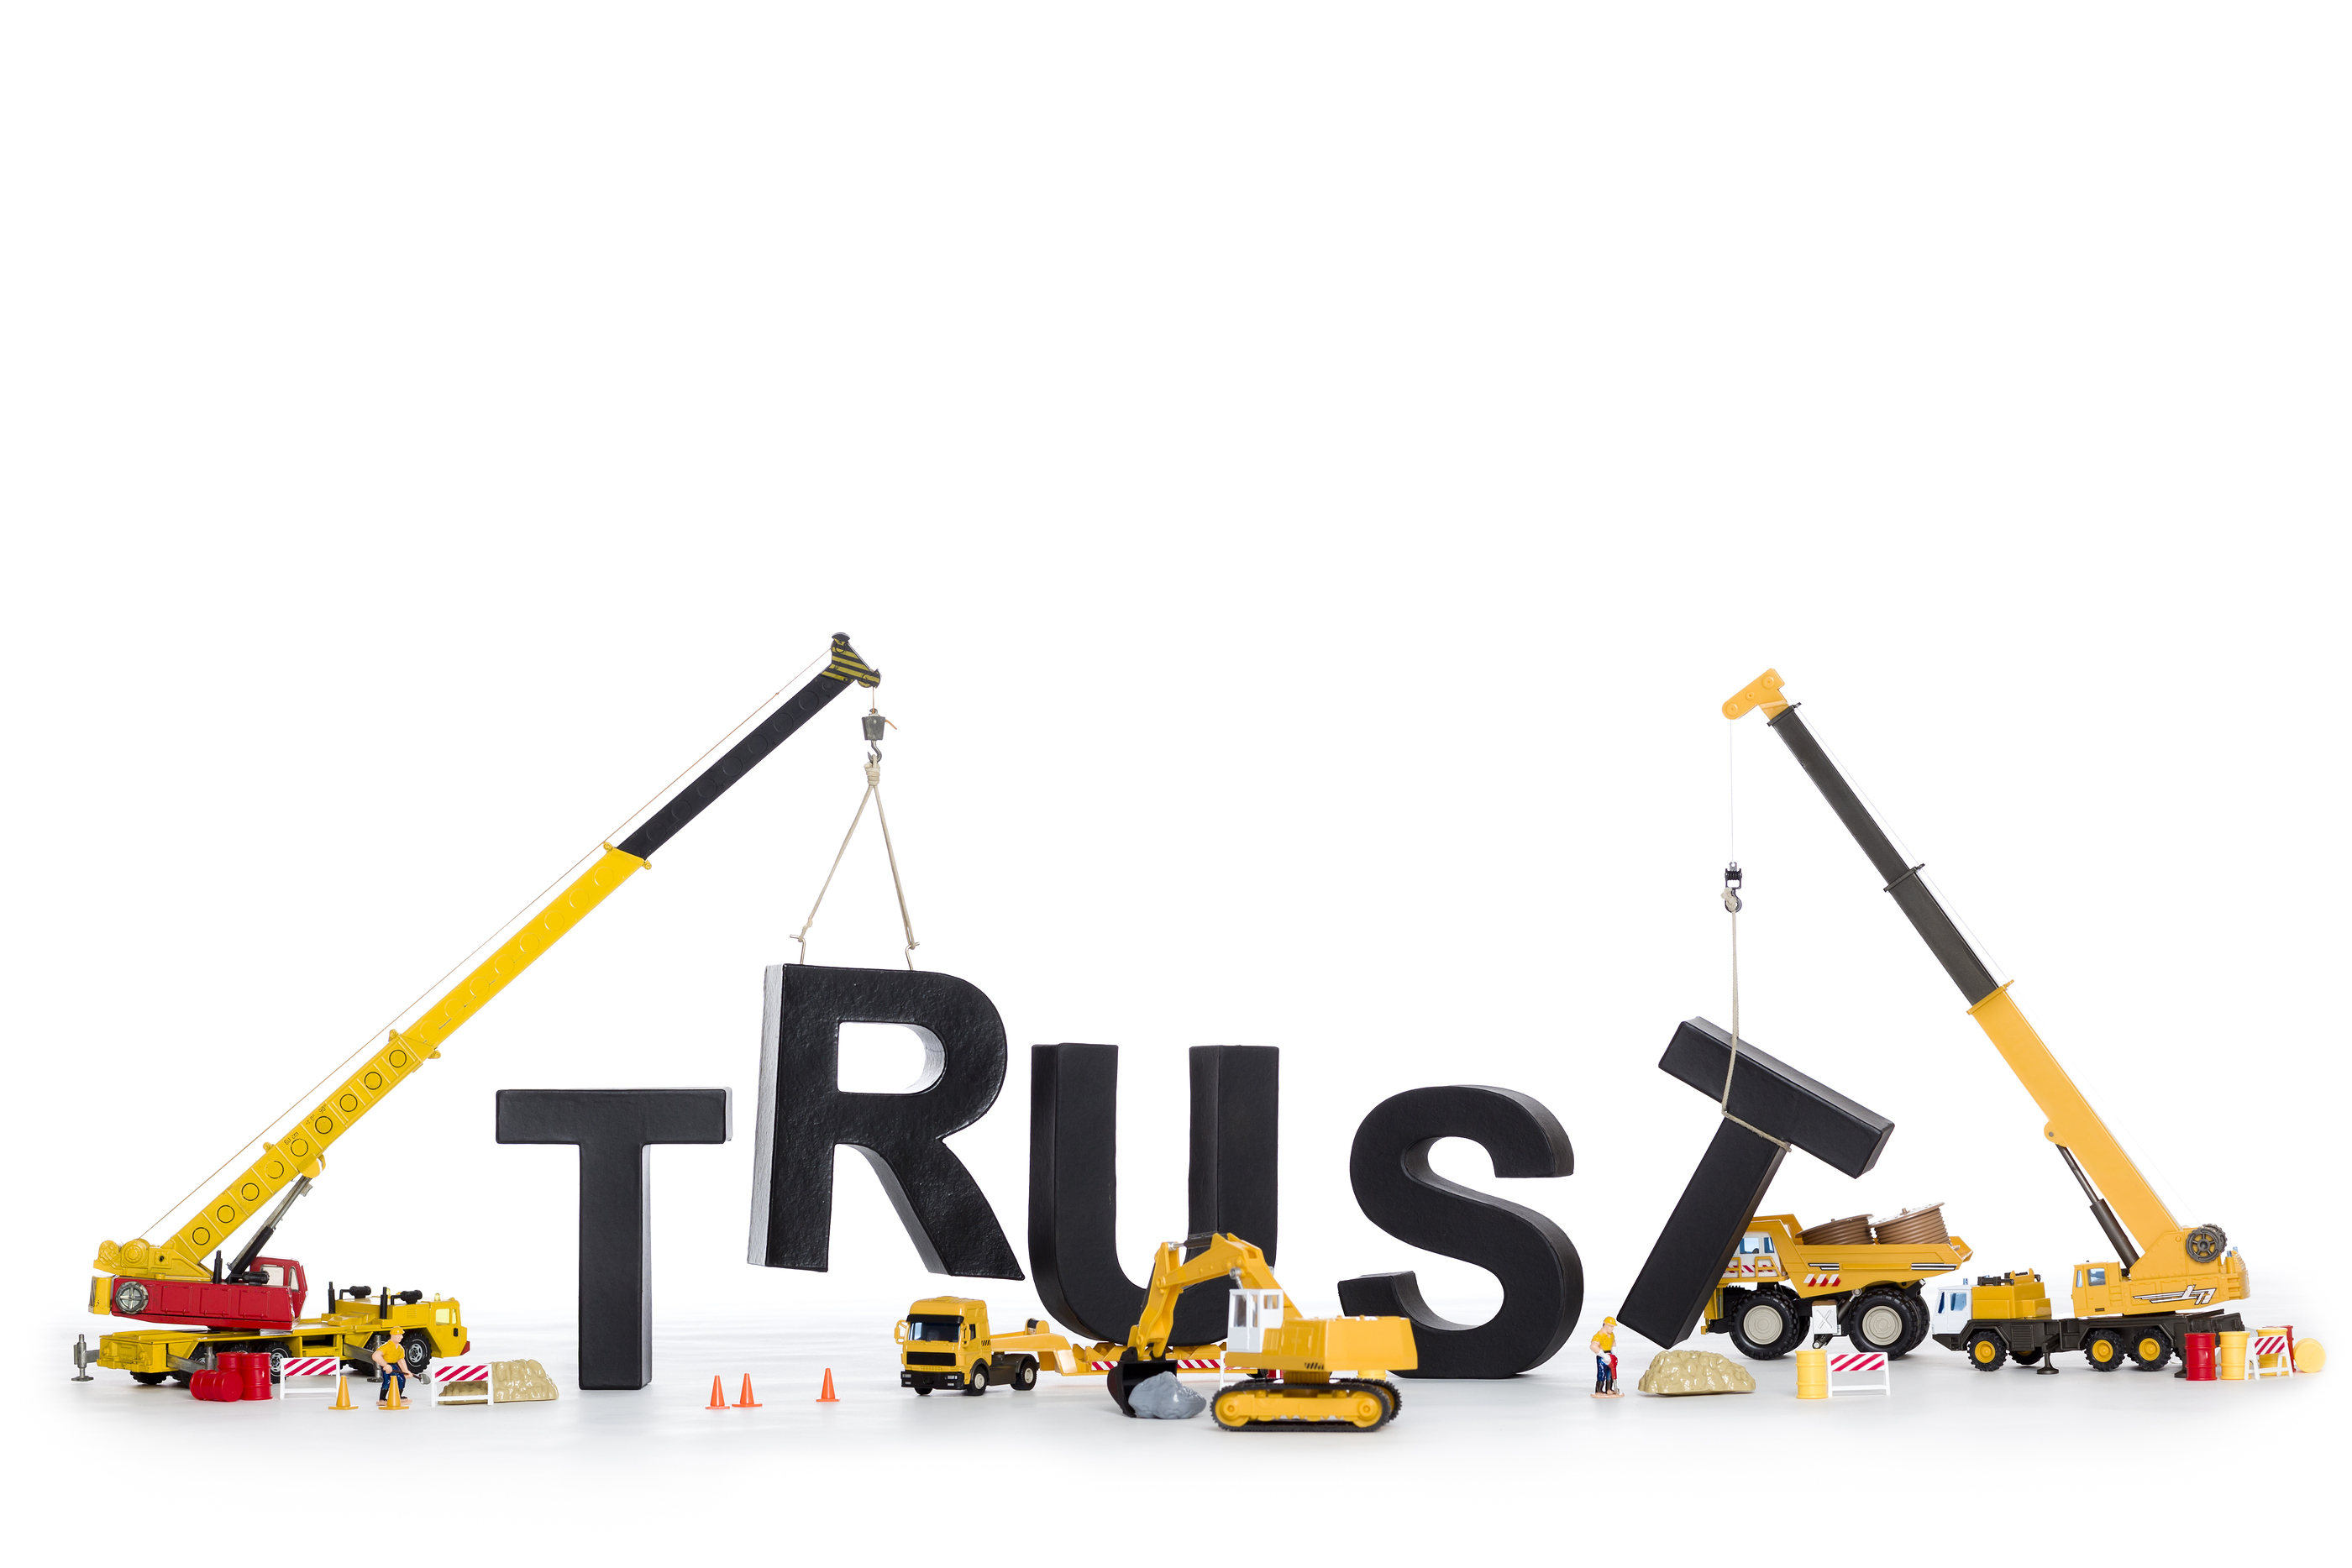 Building up trust concept: Black alphabetic letters forming the